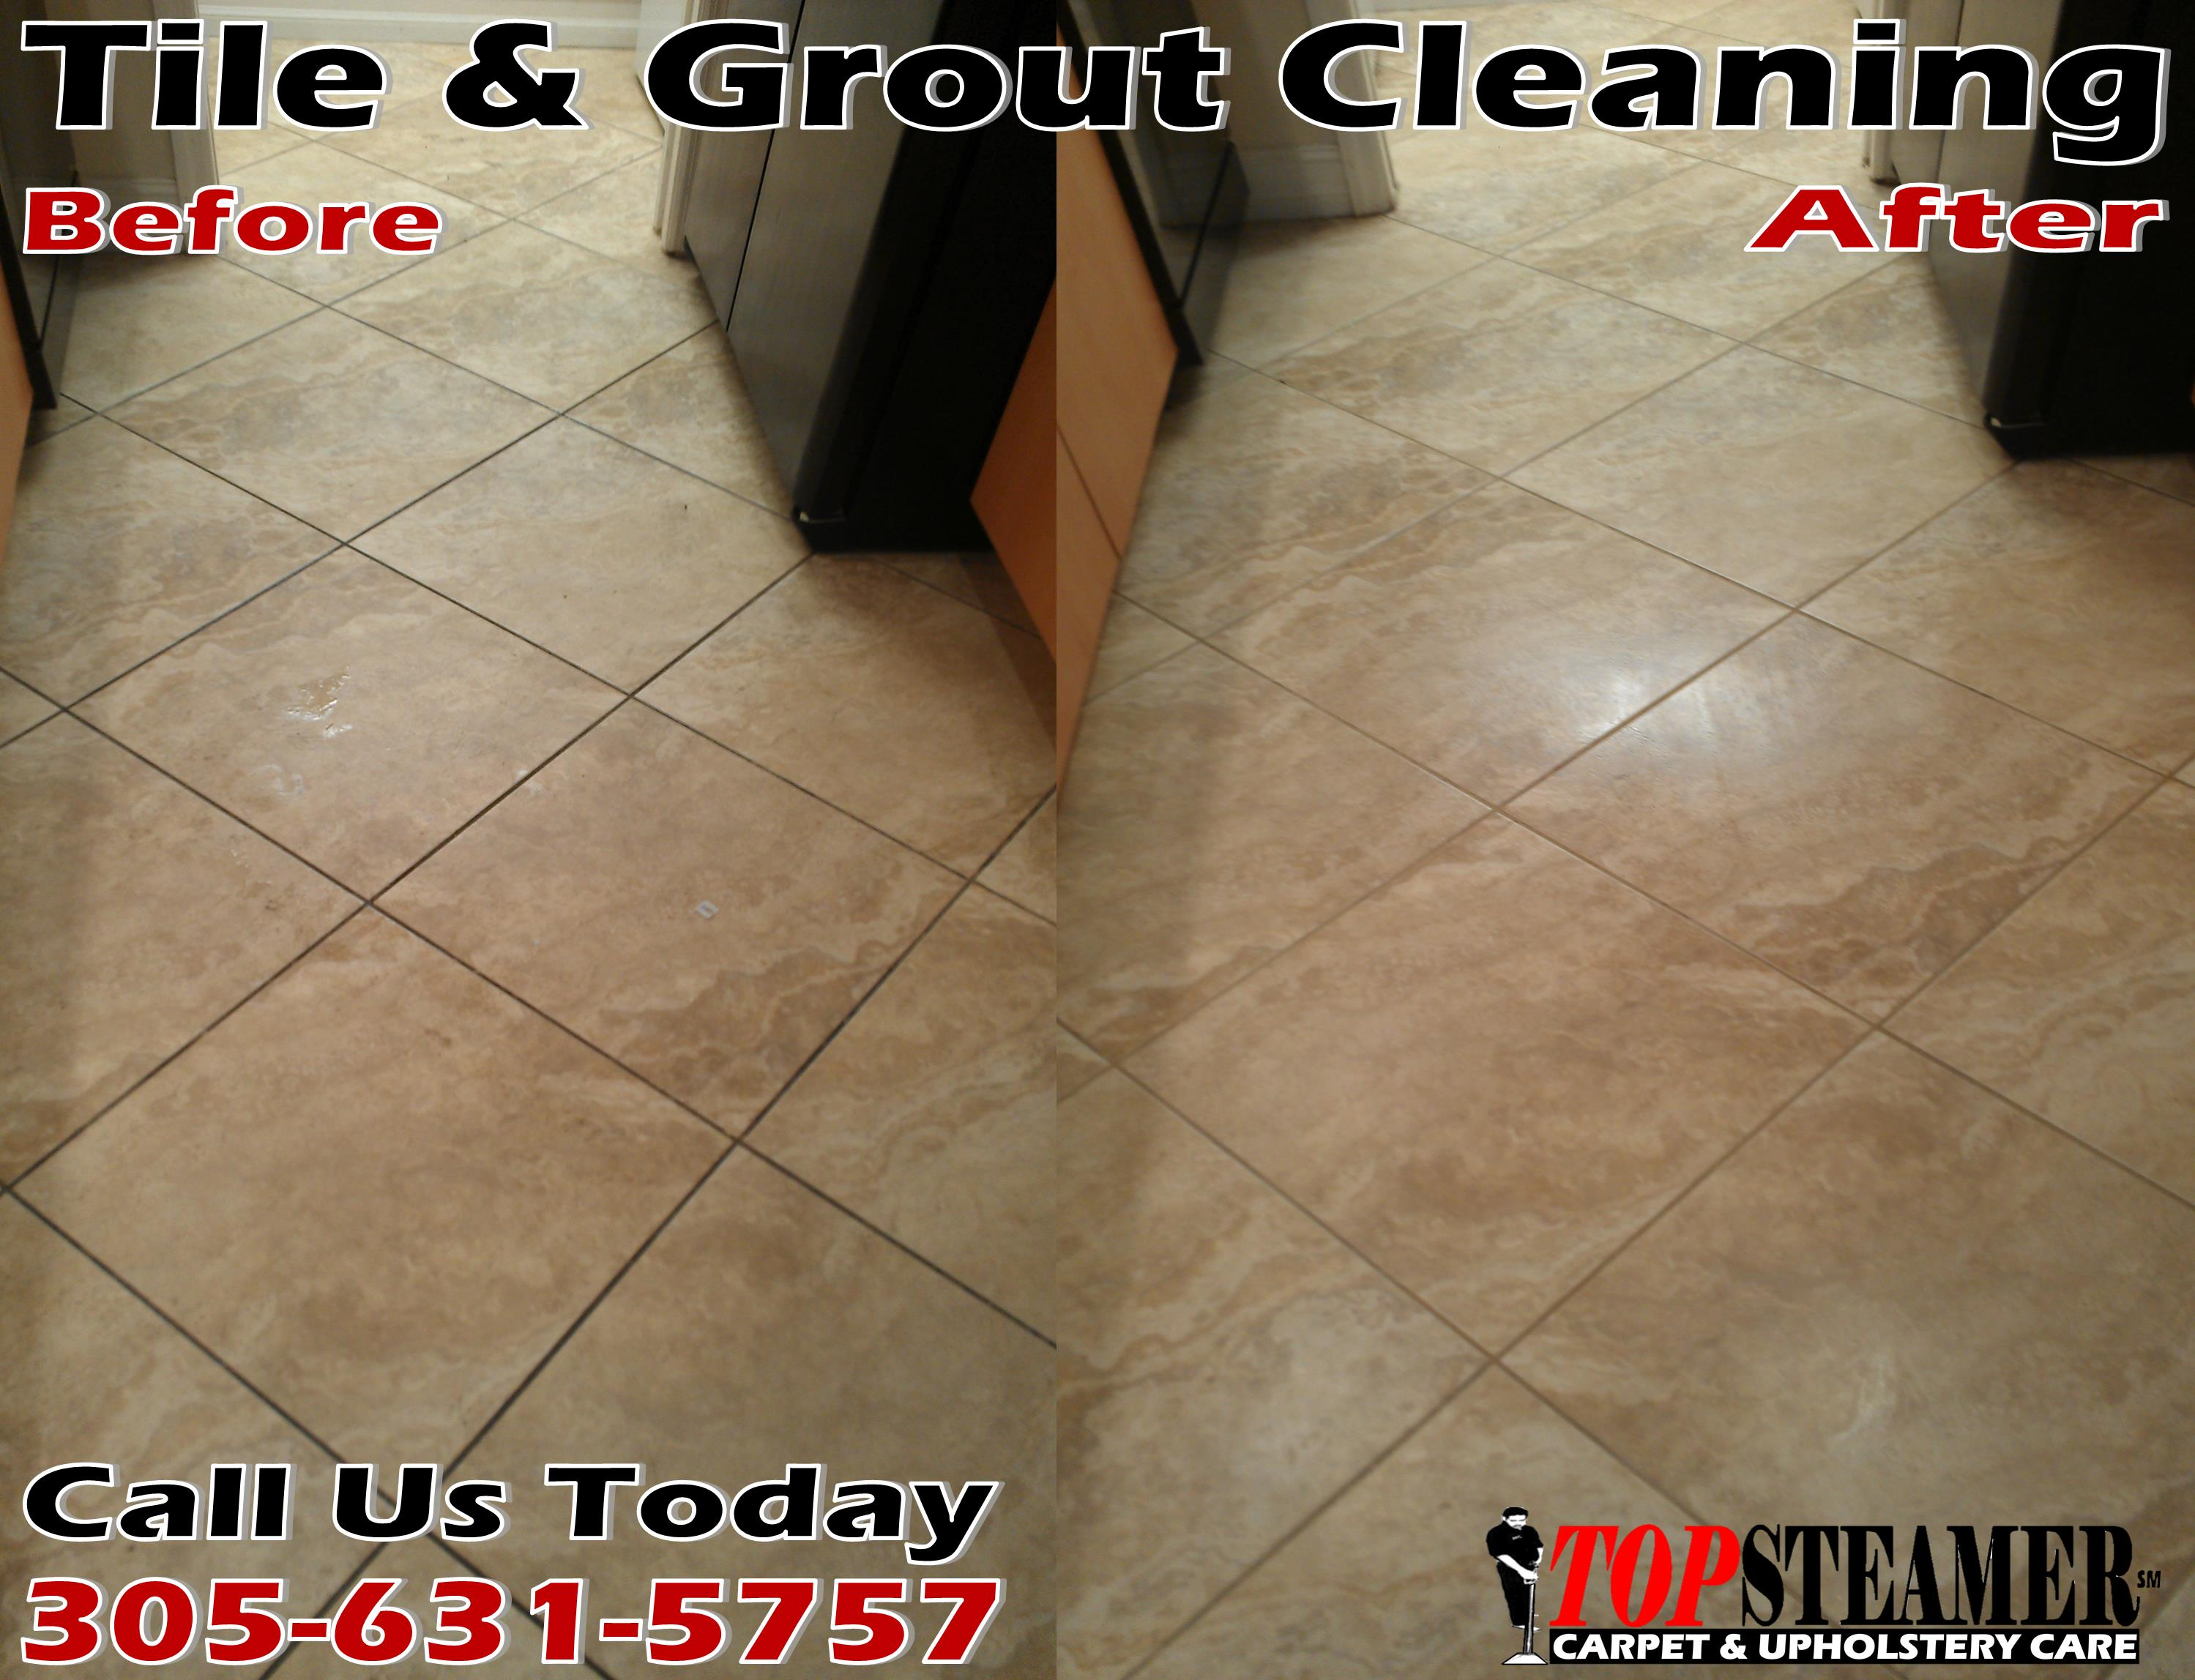 Tile And Grout Cleaning Company Archives